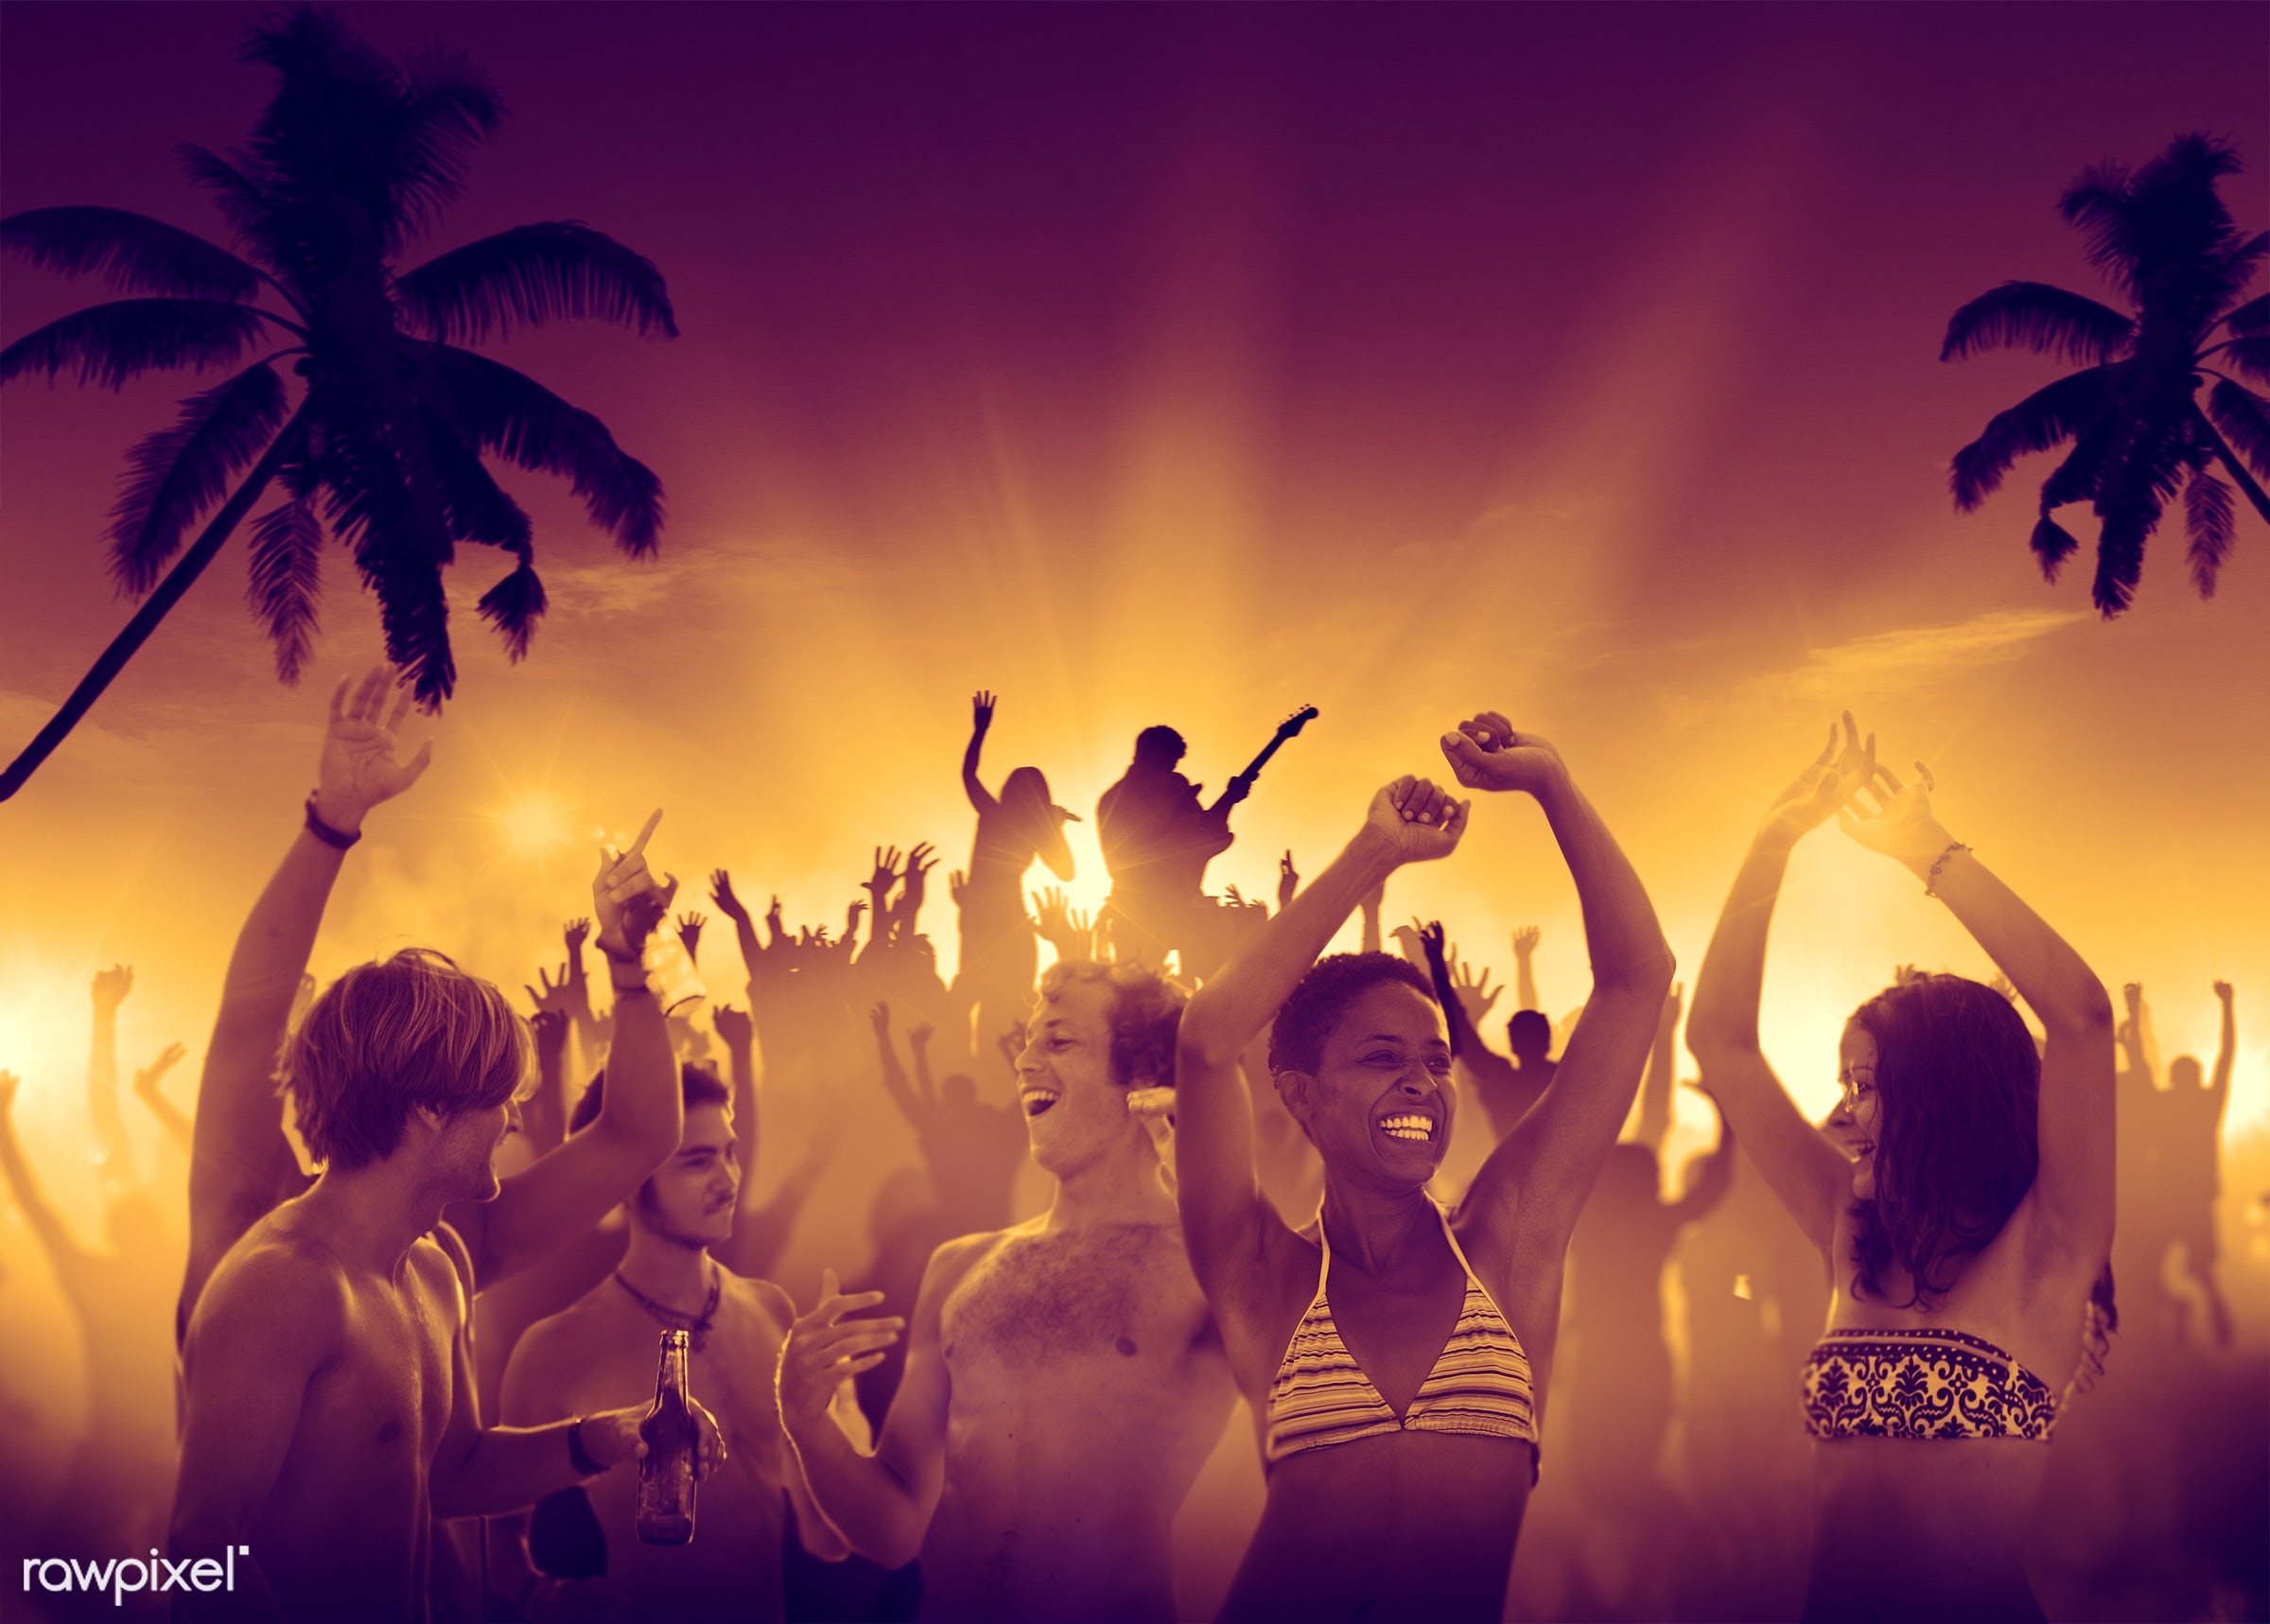 alcohol, applauding, arms outstretched, arms raised, audience, back lit, beach, beer, bikini, cheerful, coconut palm tree,...